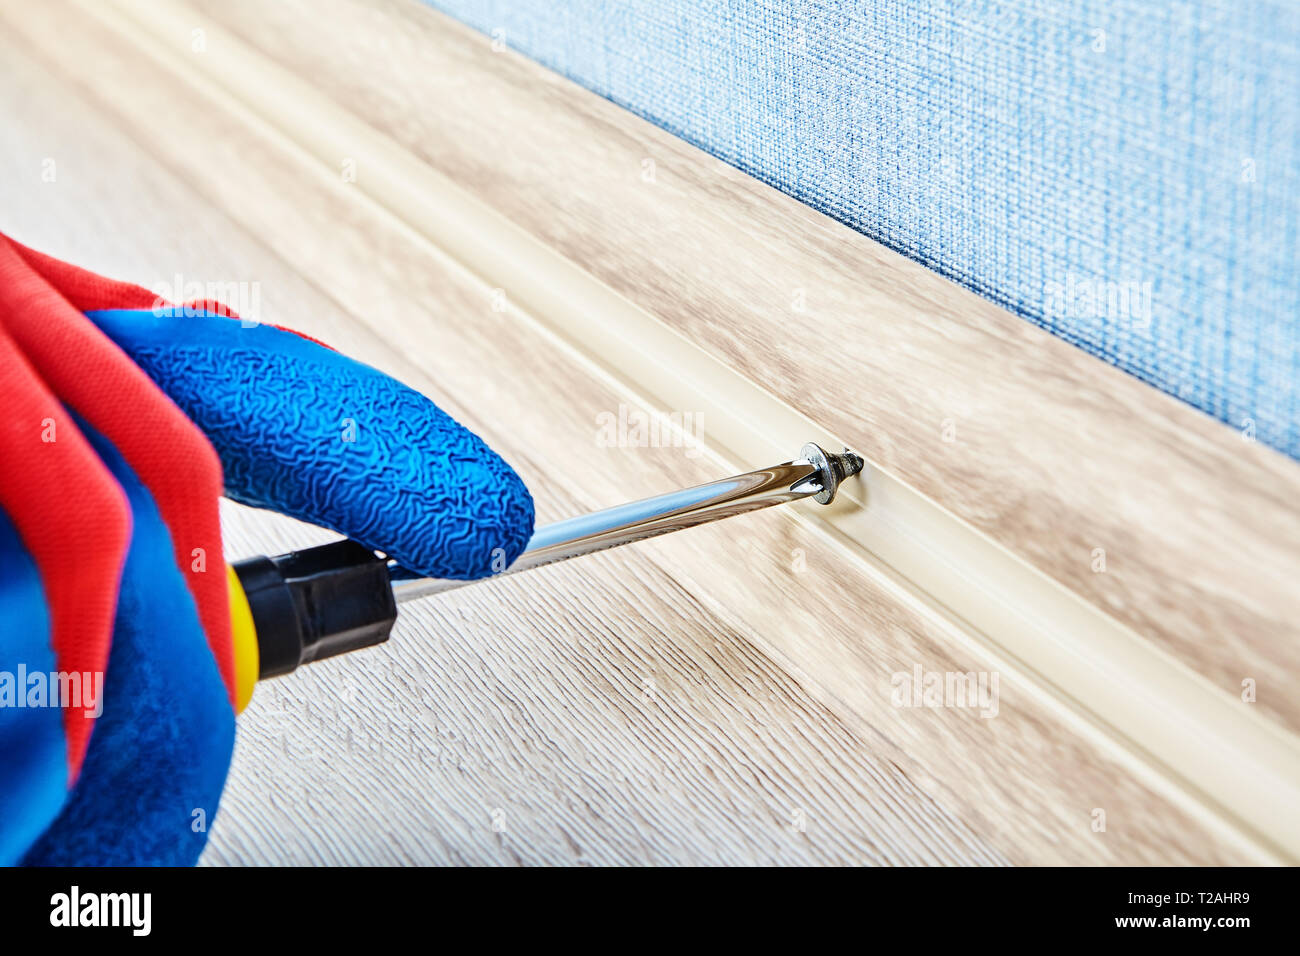 Tightening screw in flexible plinth for the floor with hand tool by electrician, close-up. - Stock Image